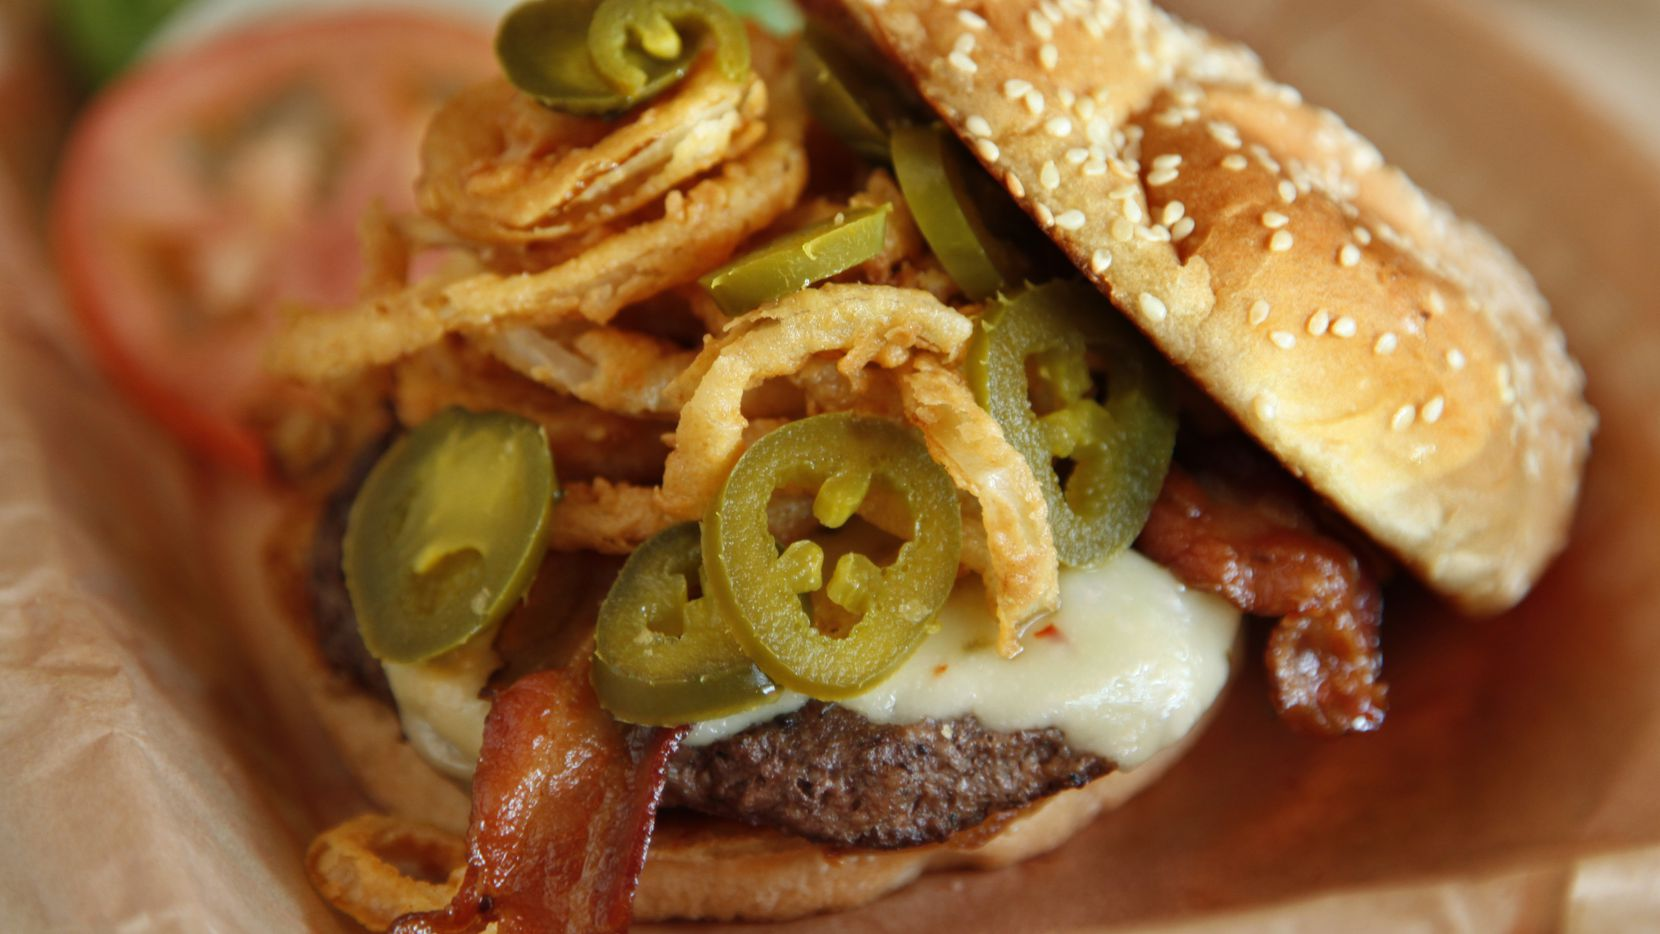 Three Twisted Root burger joints are in bankruptcy protection. The co-owner, Jason Boso, expects to file more Chapter 11 paperwork for some of the remaining restaurants.